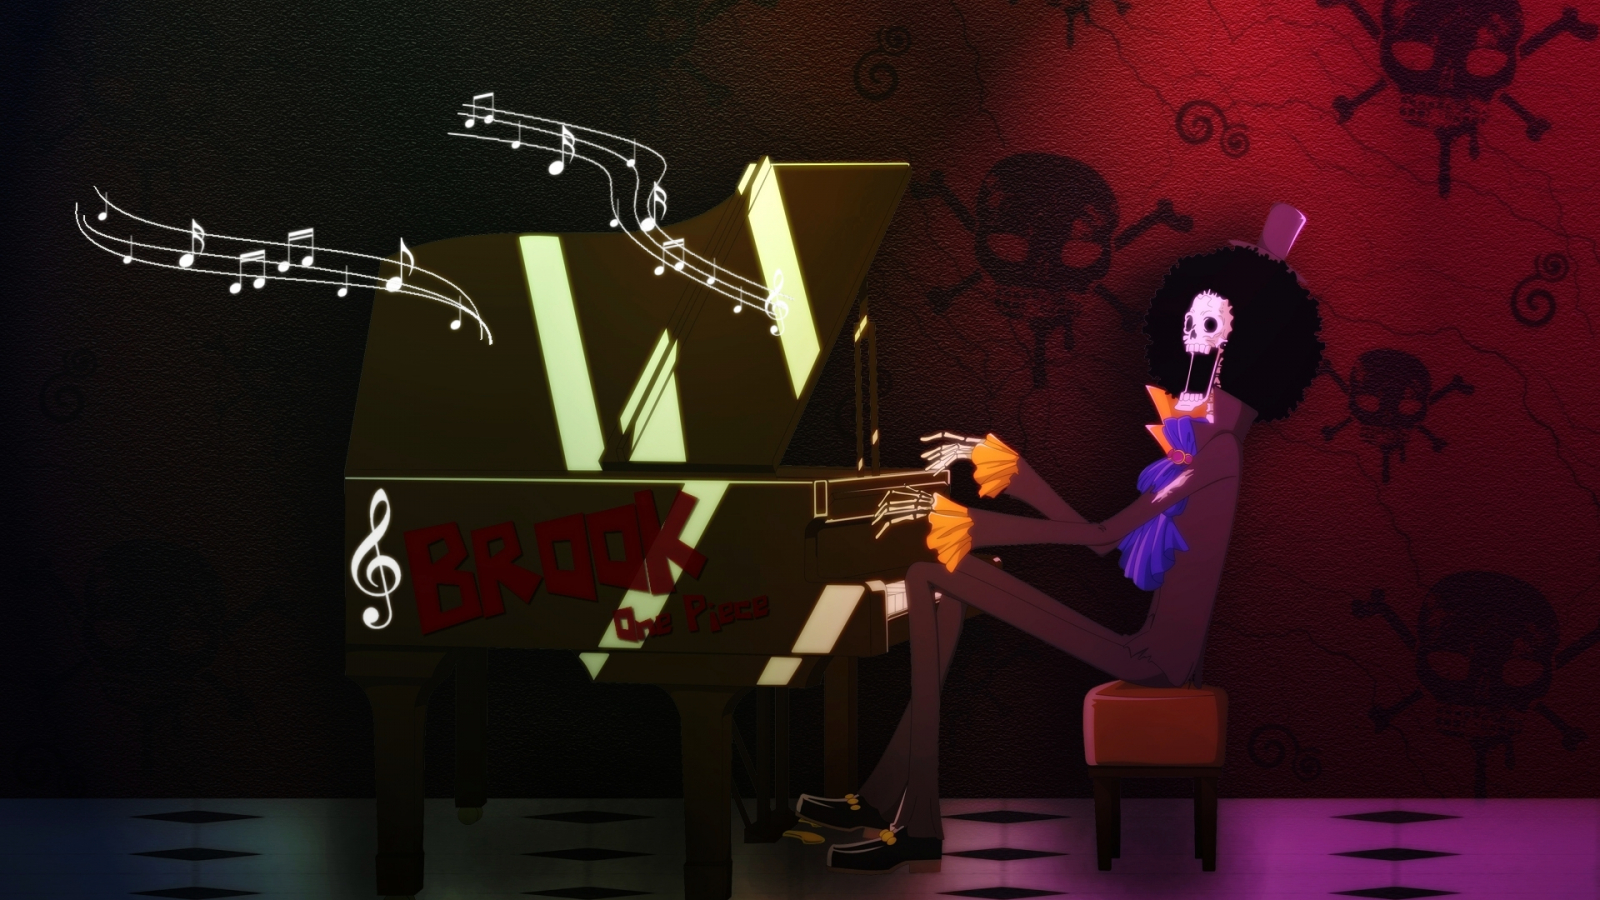 Free Download Brook Playing Piano Wallpaper One Piece Anime Wallpaper 1920x1200 For Your Desktop Mobile Tablet Explore 47 Brook One Piece Wallpaper Brook One Piece Wallpaper One Piece Wallpaper